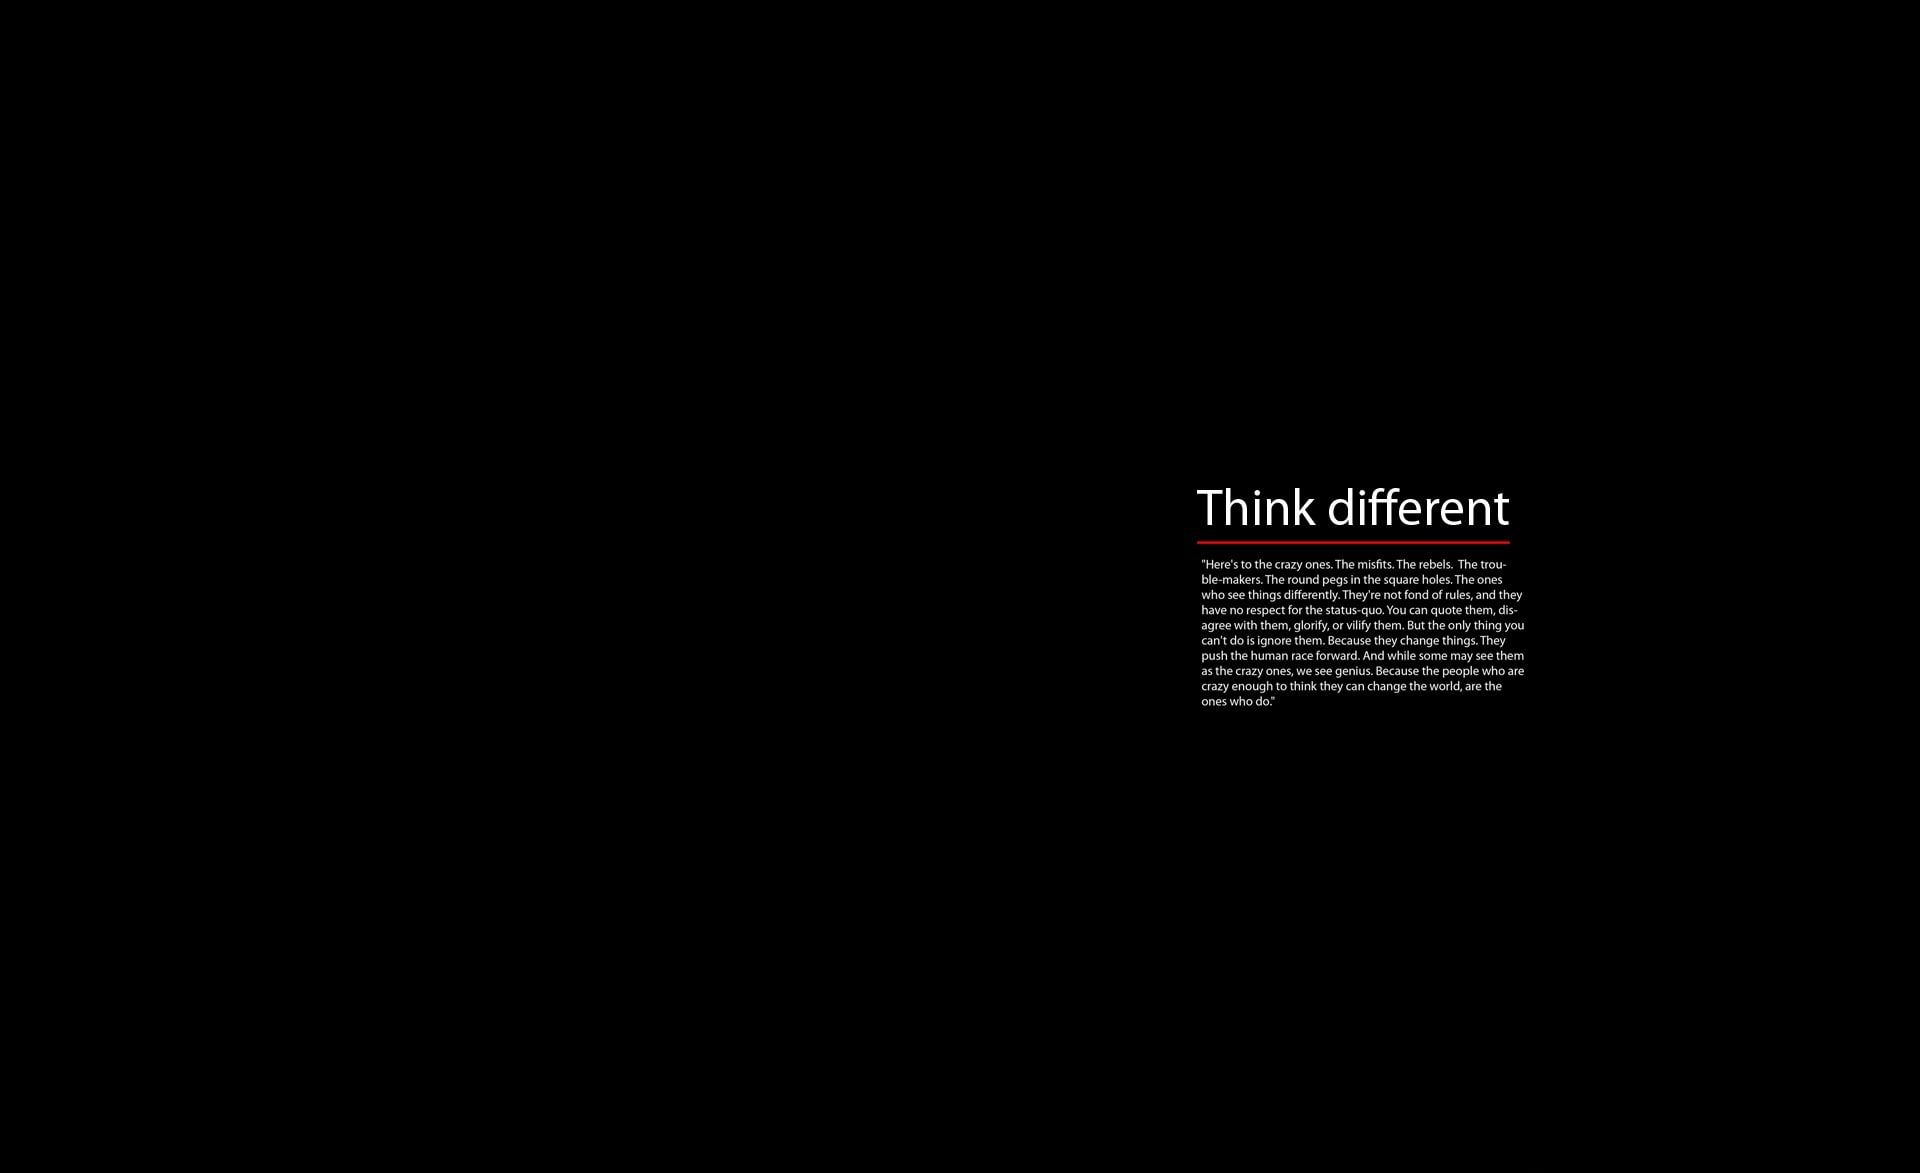 Think Different Black Background With Text Overlay Computers